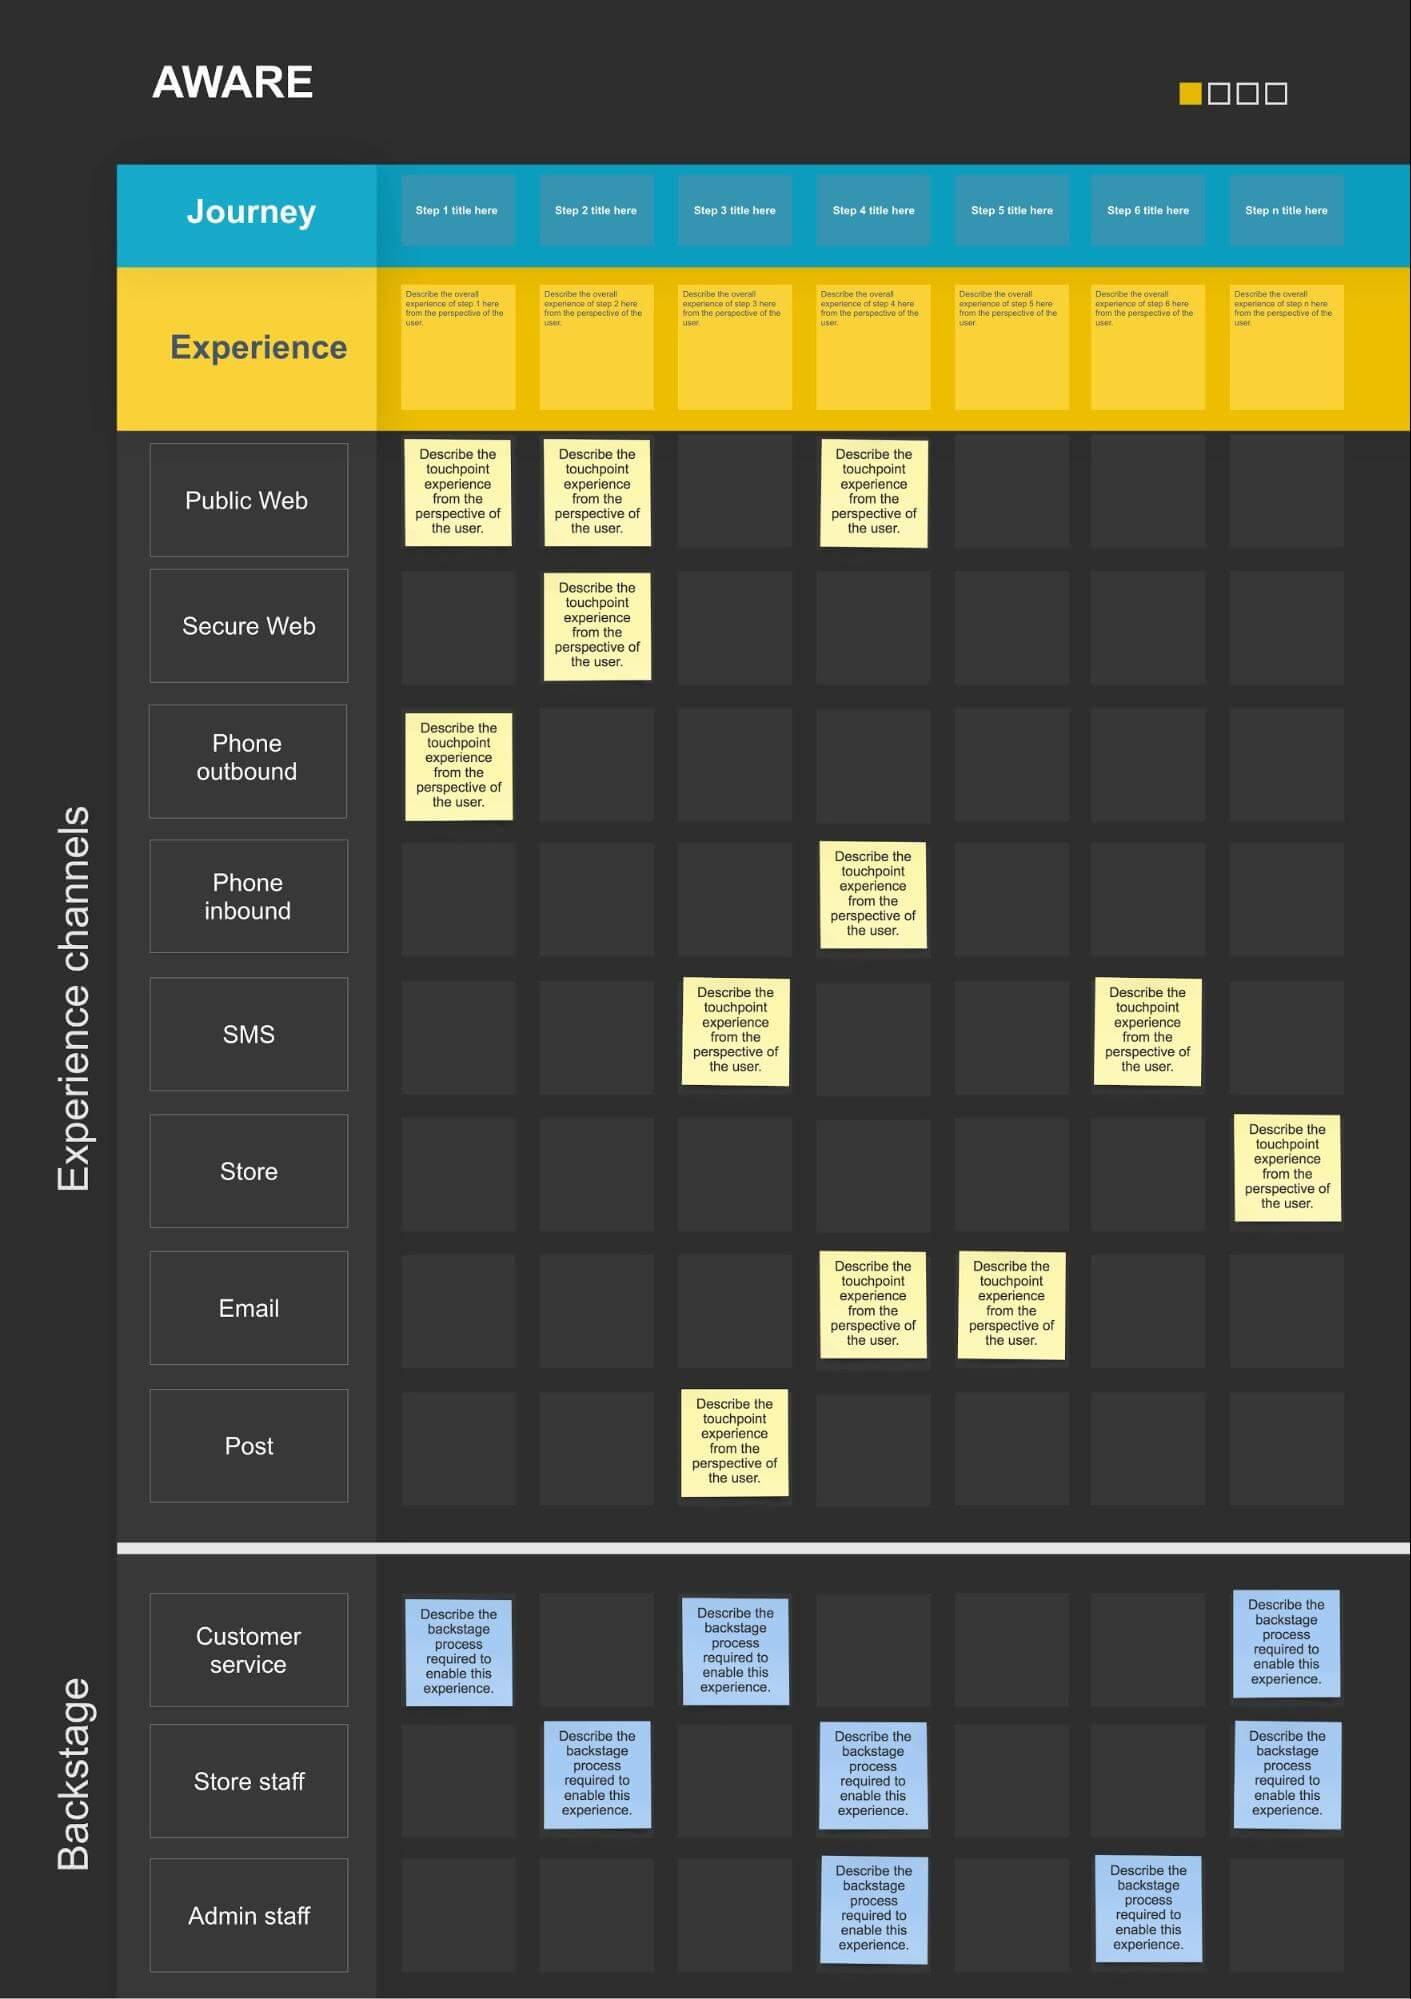 A phase of service blueprint by SapientNitro